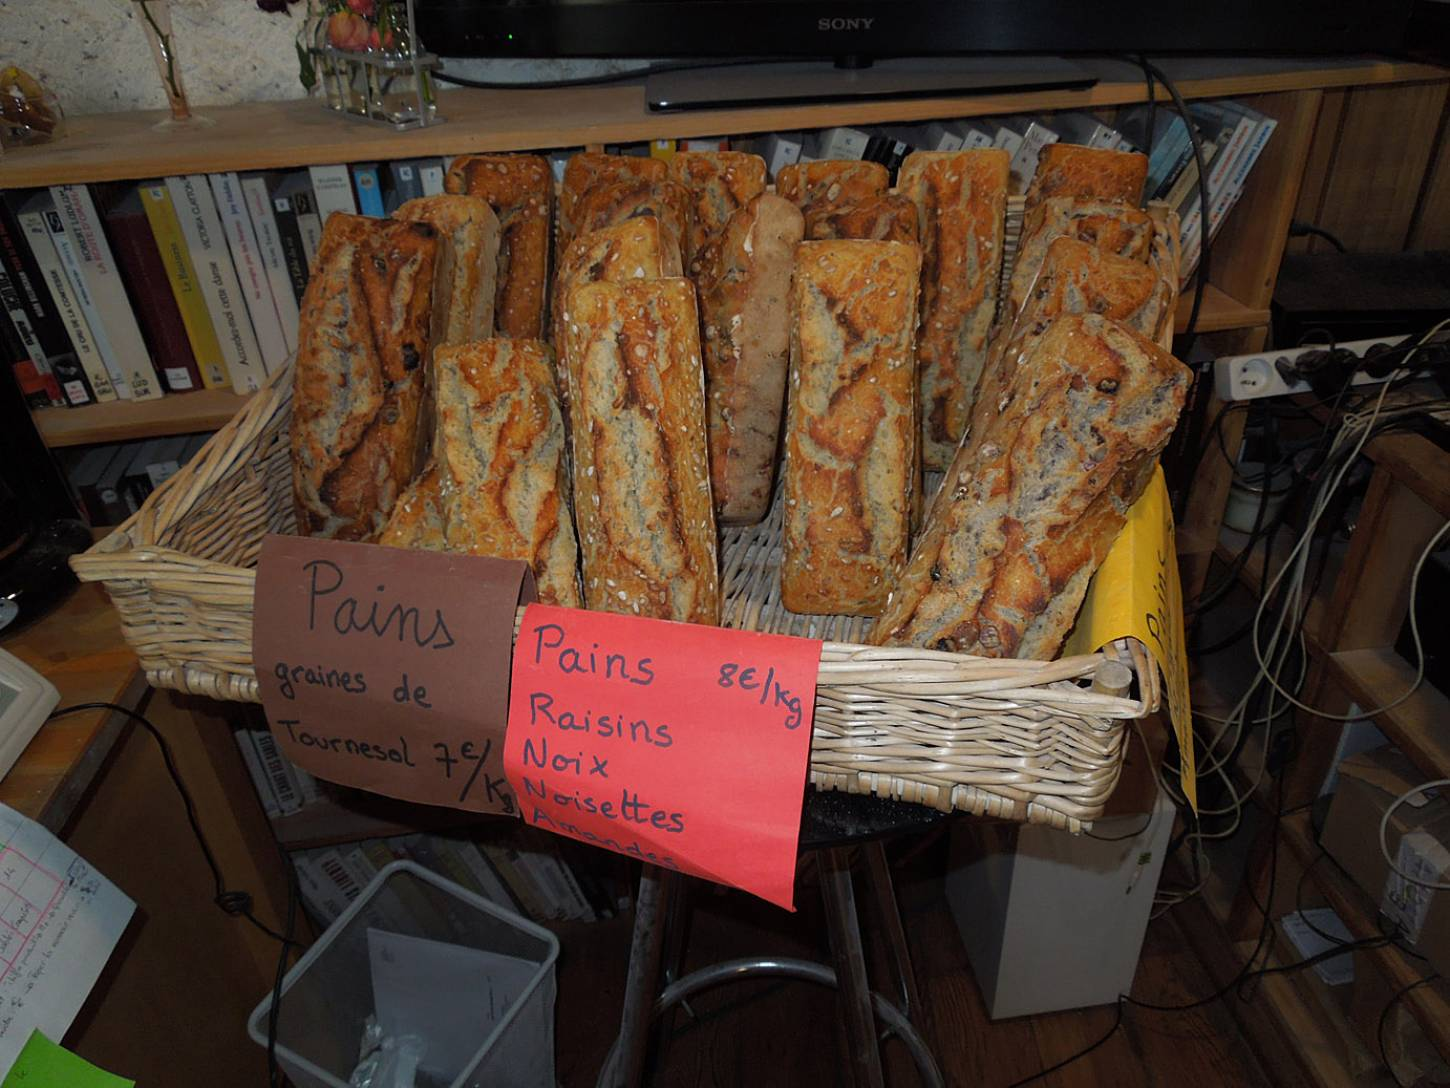 visit to the boulangers paysan of <a href='https://www.facebook.com/Ferme.Campagnolle' target=_blank>Ferme Campognole</a> - the day's bread - 10:25am&nbsp;29<sup>th</sup>&nbsp;May.&nbsp;'15